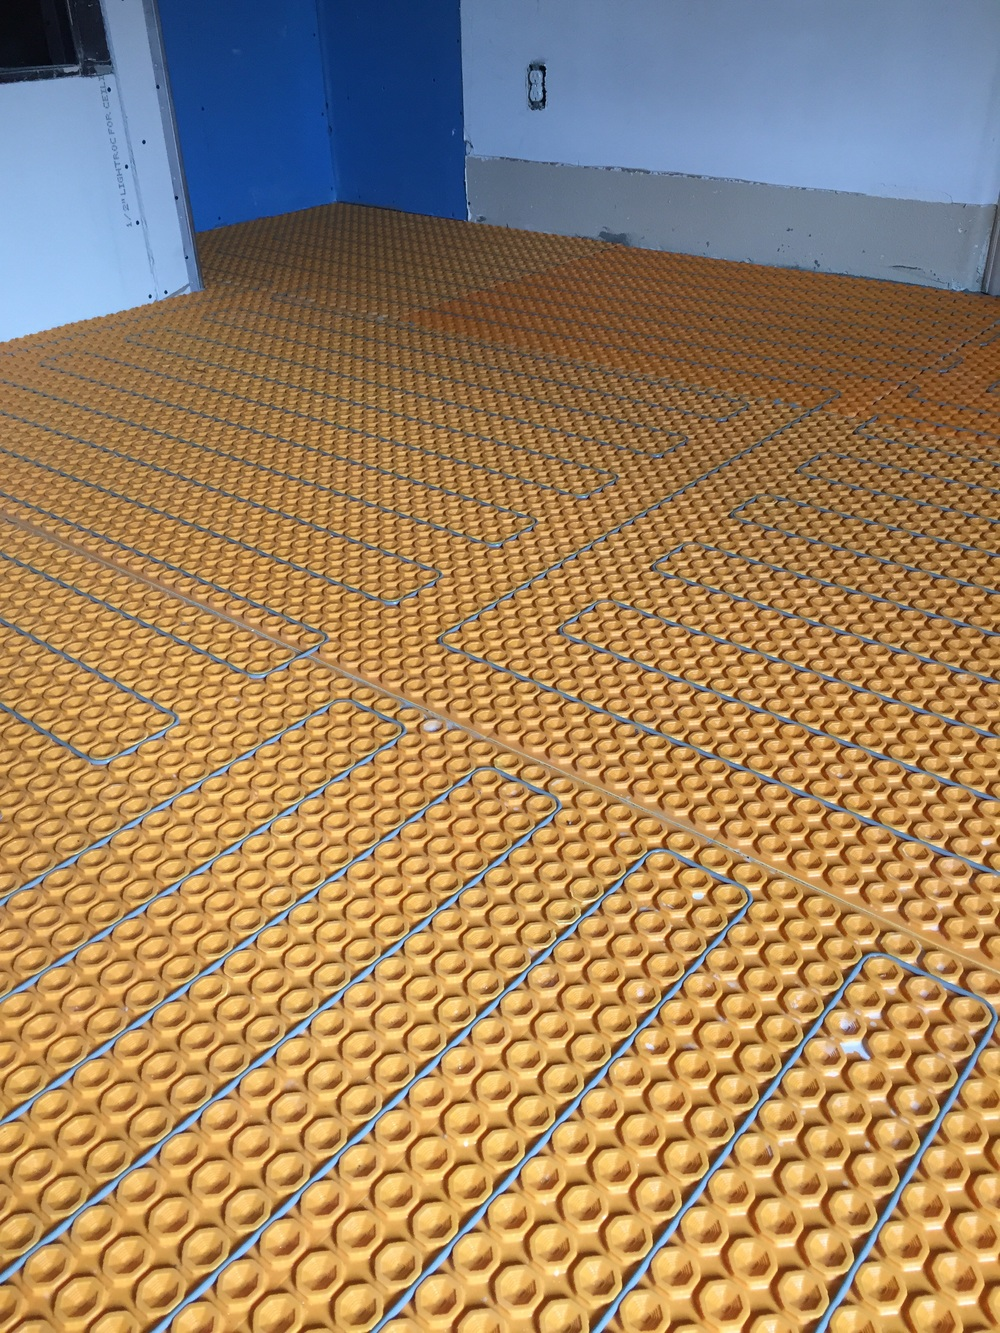 The Schluter Dietra System Is A Mat And Wire System. First The Mat Is Laid,  And Then The Wires Are Placed At Specific Intervals For The Areas That  Heating ...